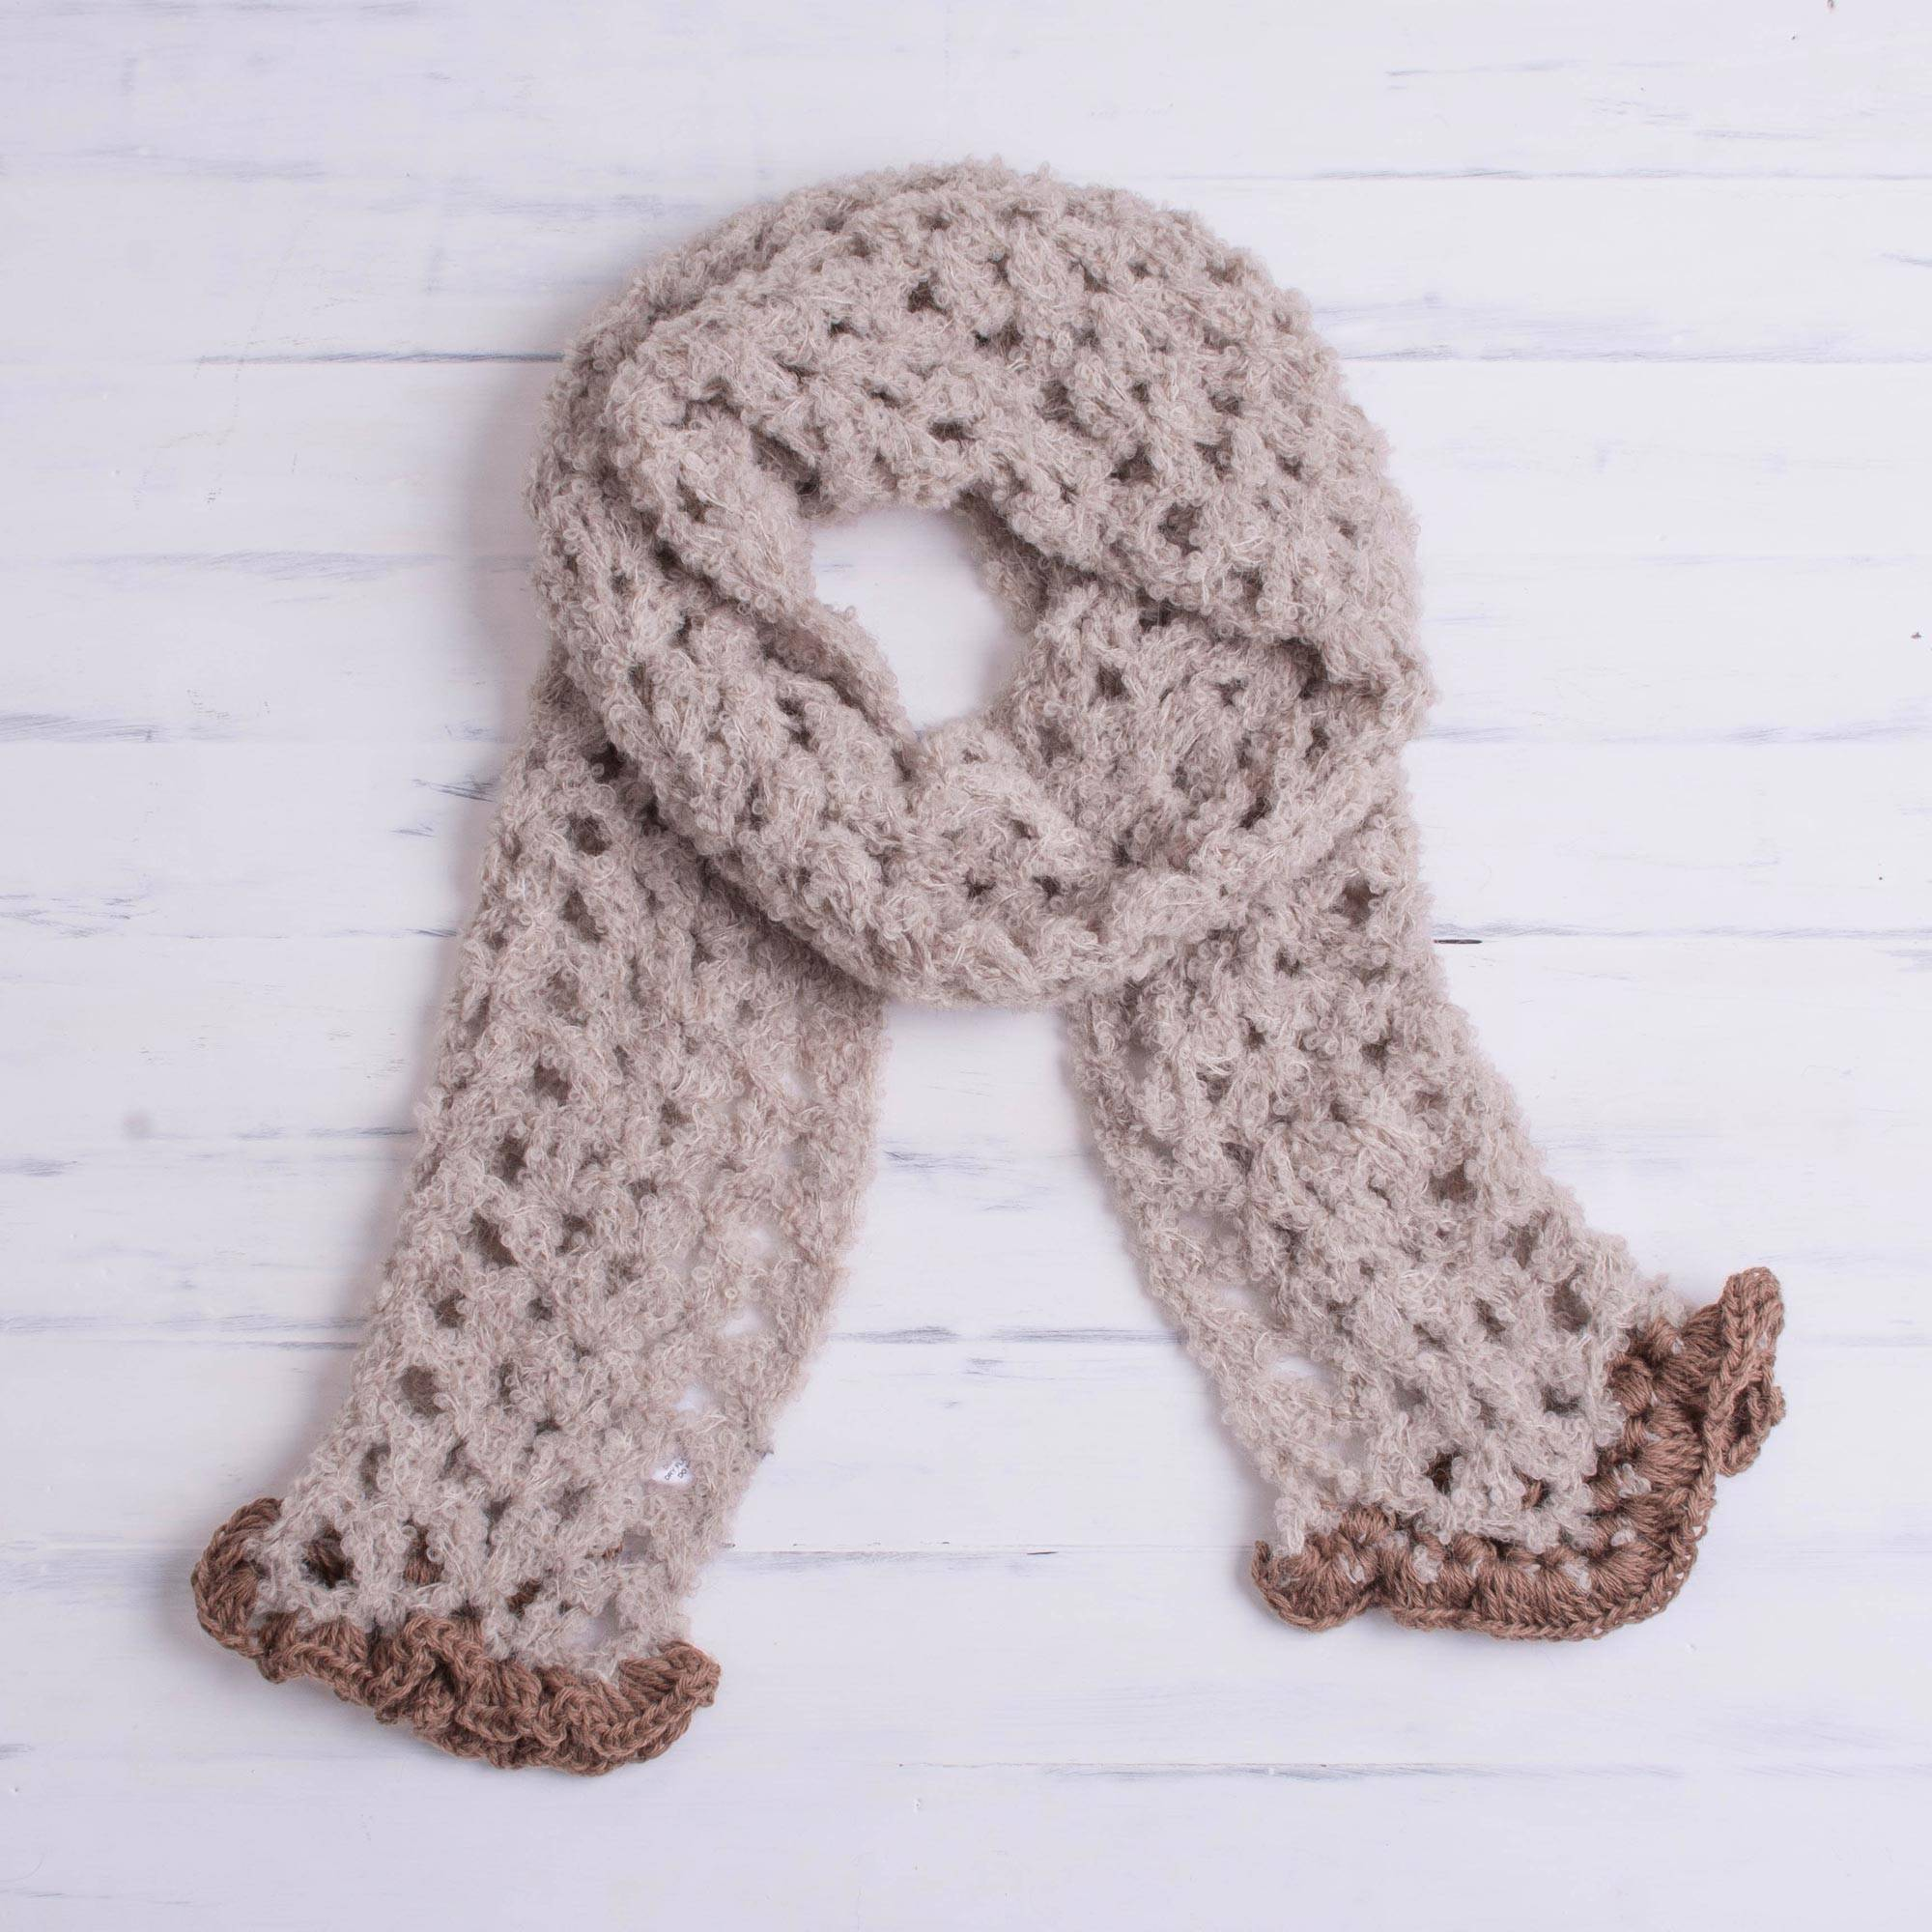 Hand Crocheted Alpaca Blend Scarf In Oyster From Peru Oyster